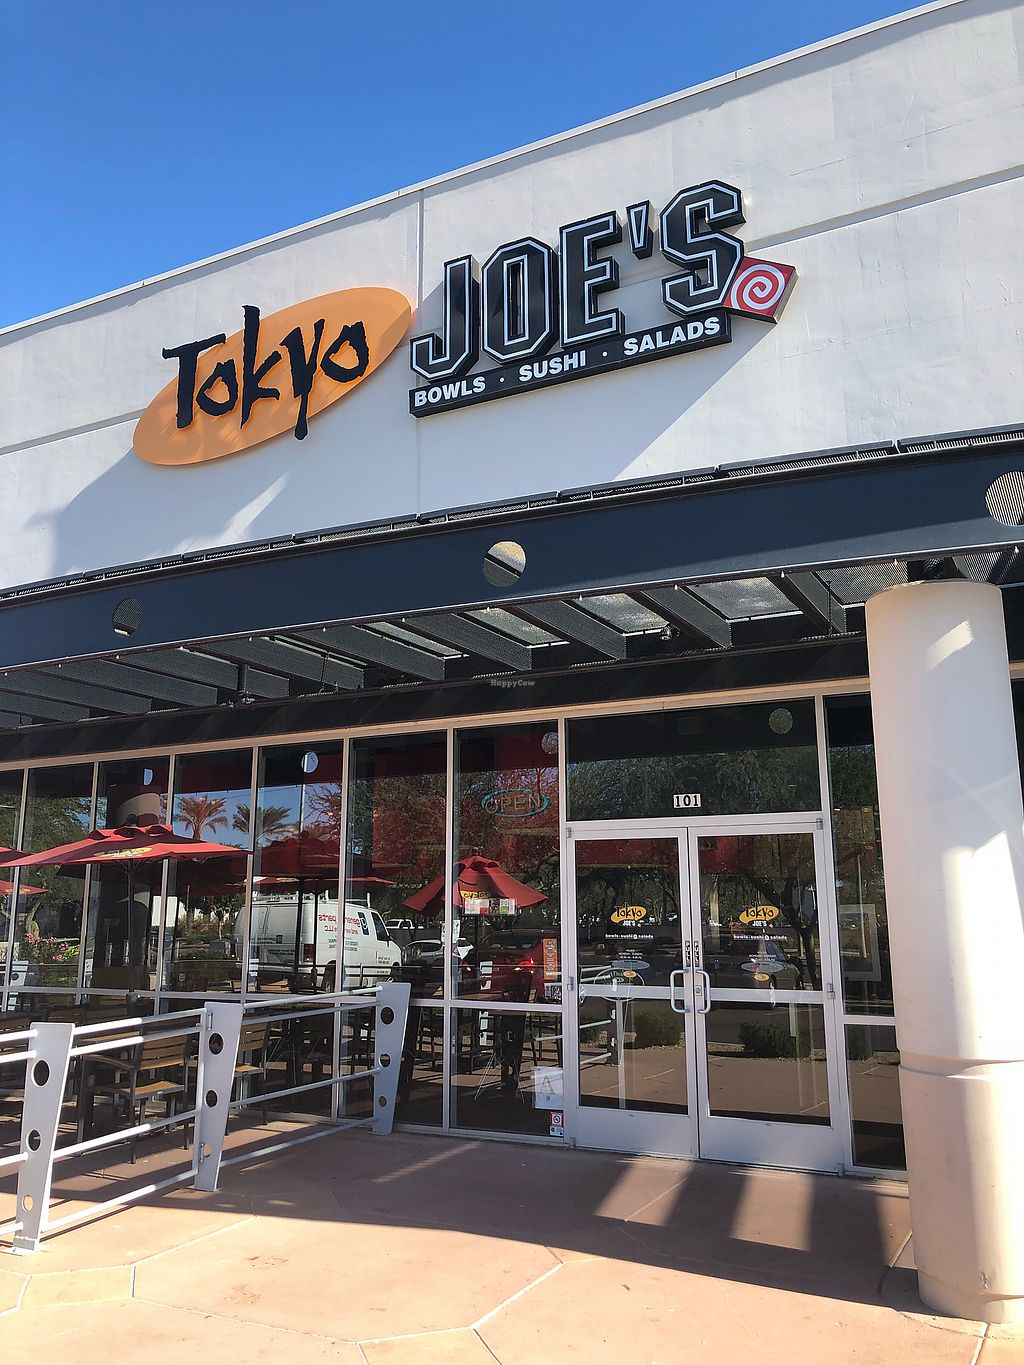 """Photo of Tokyo Joe's  by <a href=""""/members/profile/Killa"""">Killa</a> <br/>Tokyo Joe's <br/> November 25, 2017  - <a href='/contact/abuse/image/88394/328995'>Report</a>"""